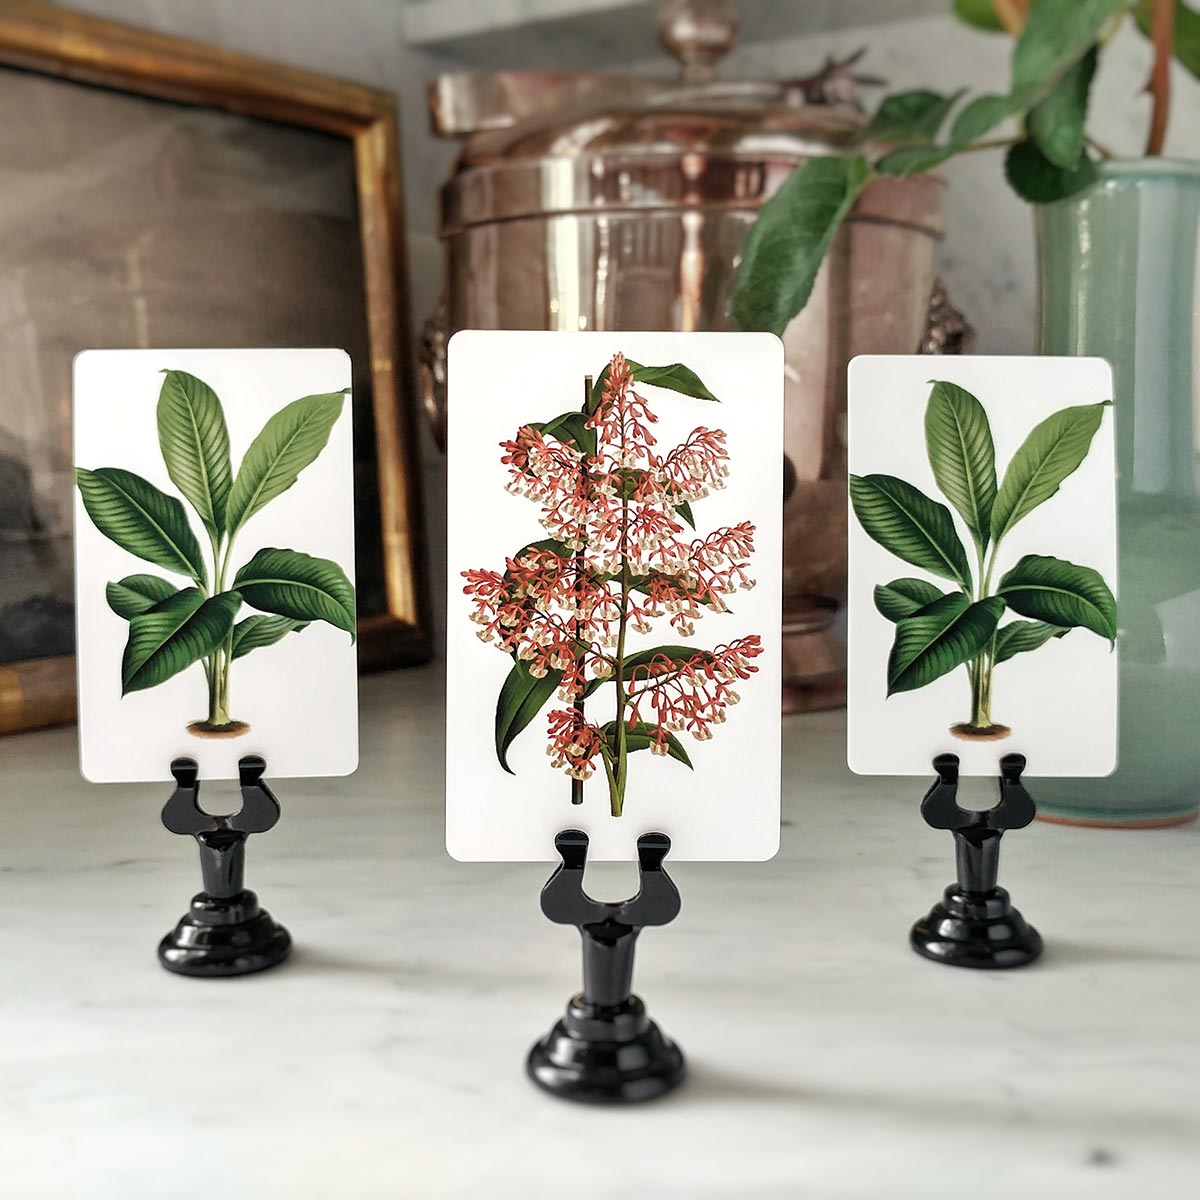 The Punctilious Mr. P's 'Tropical Foliage' place cards